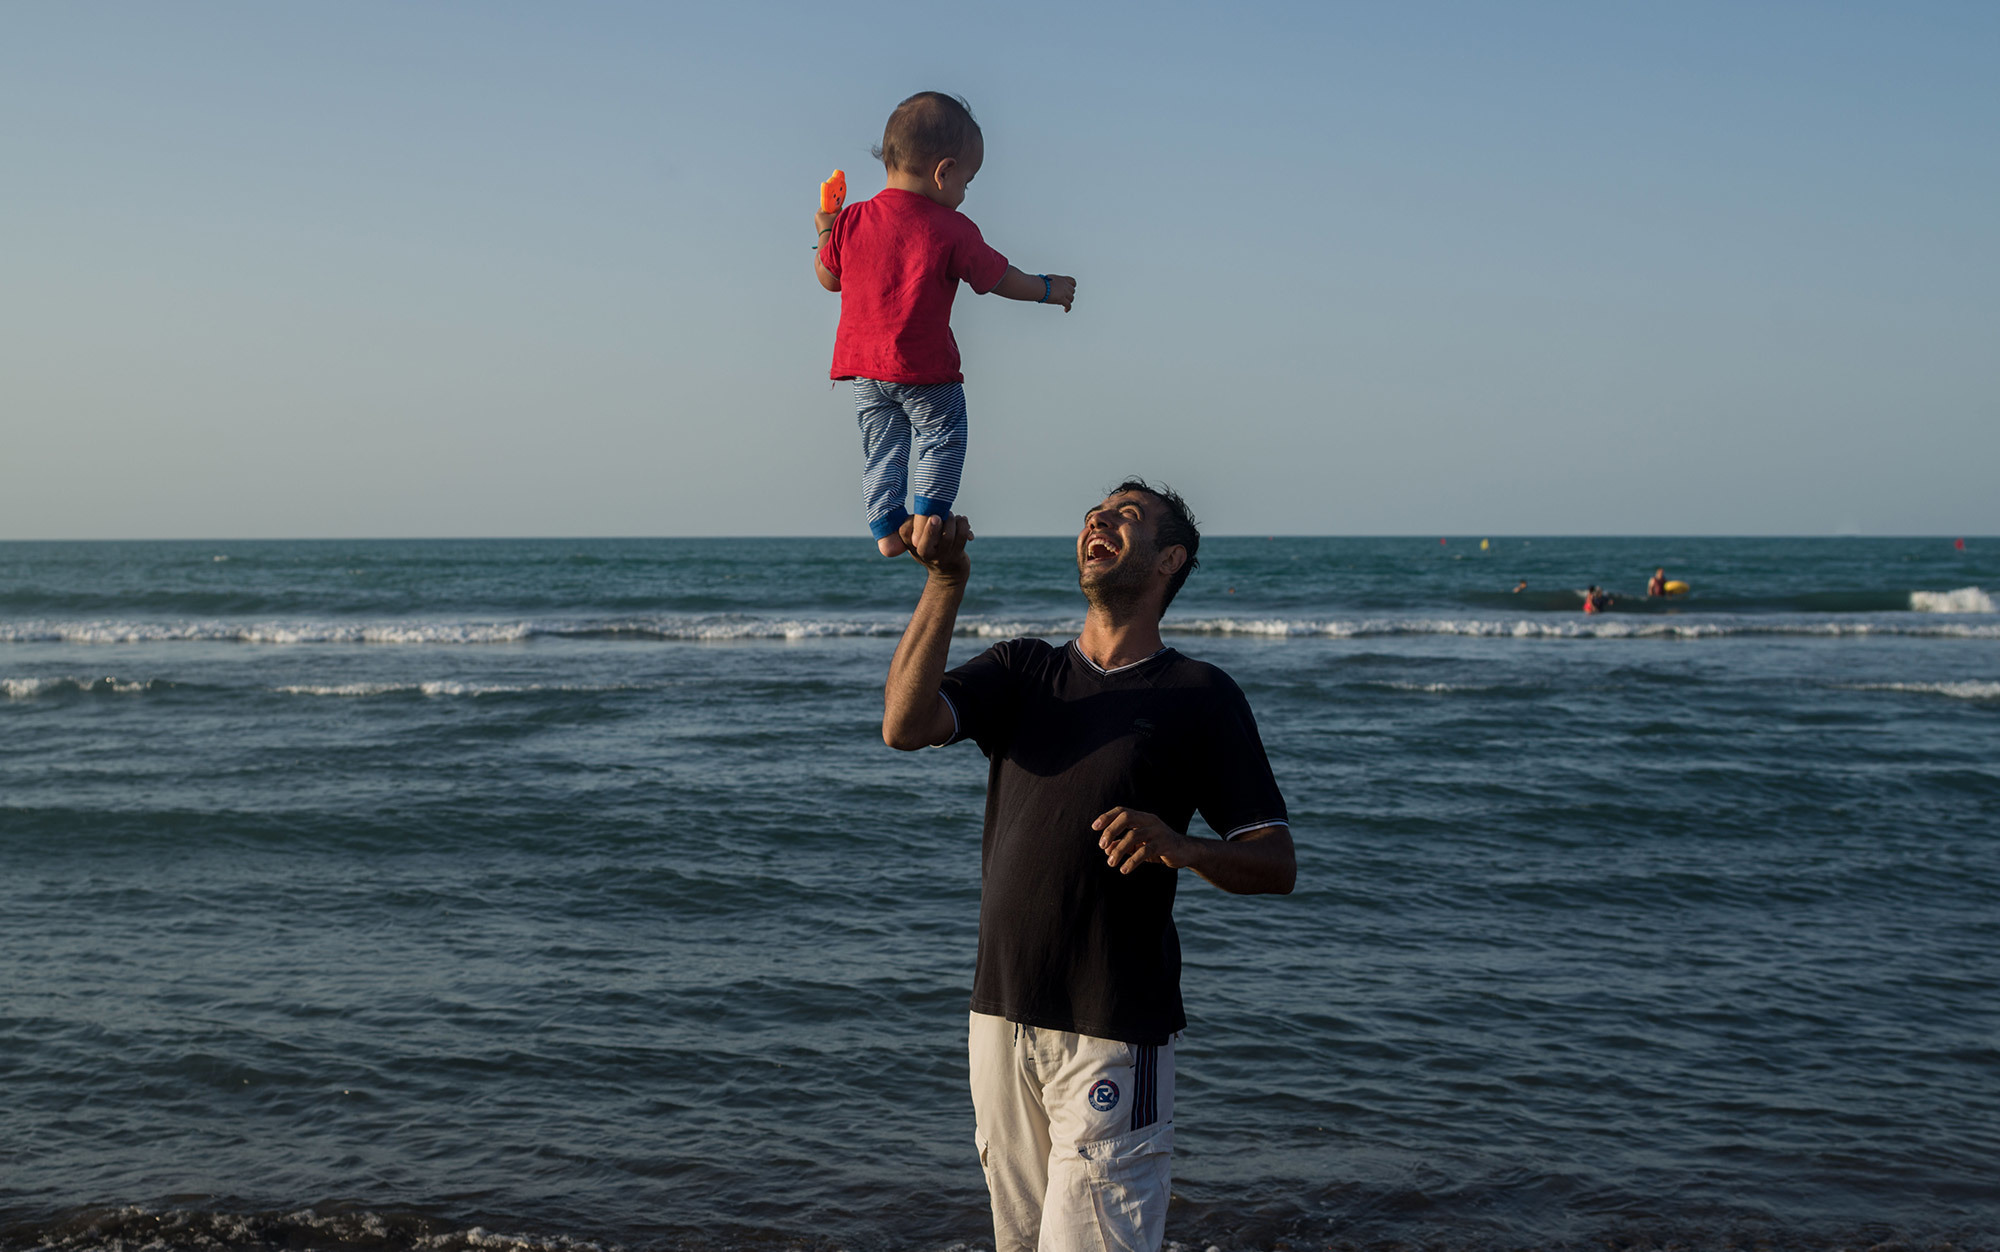 The devotion of the human dad separates us from other apes